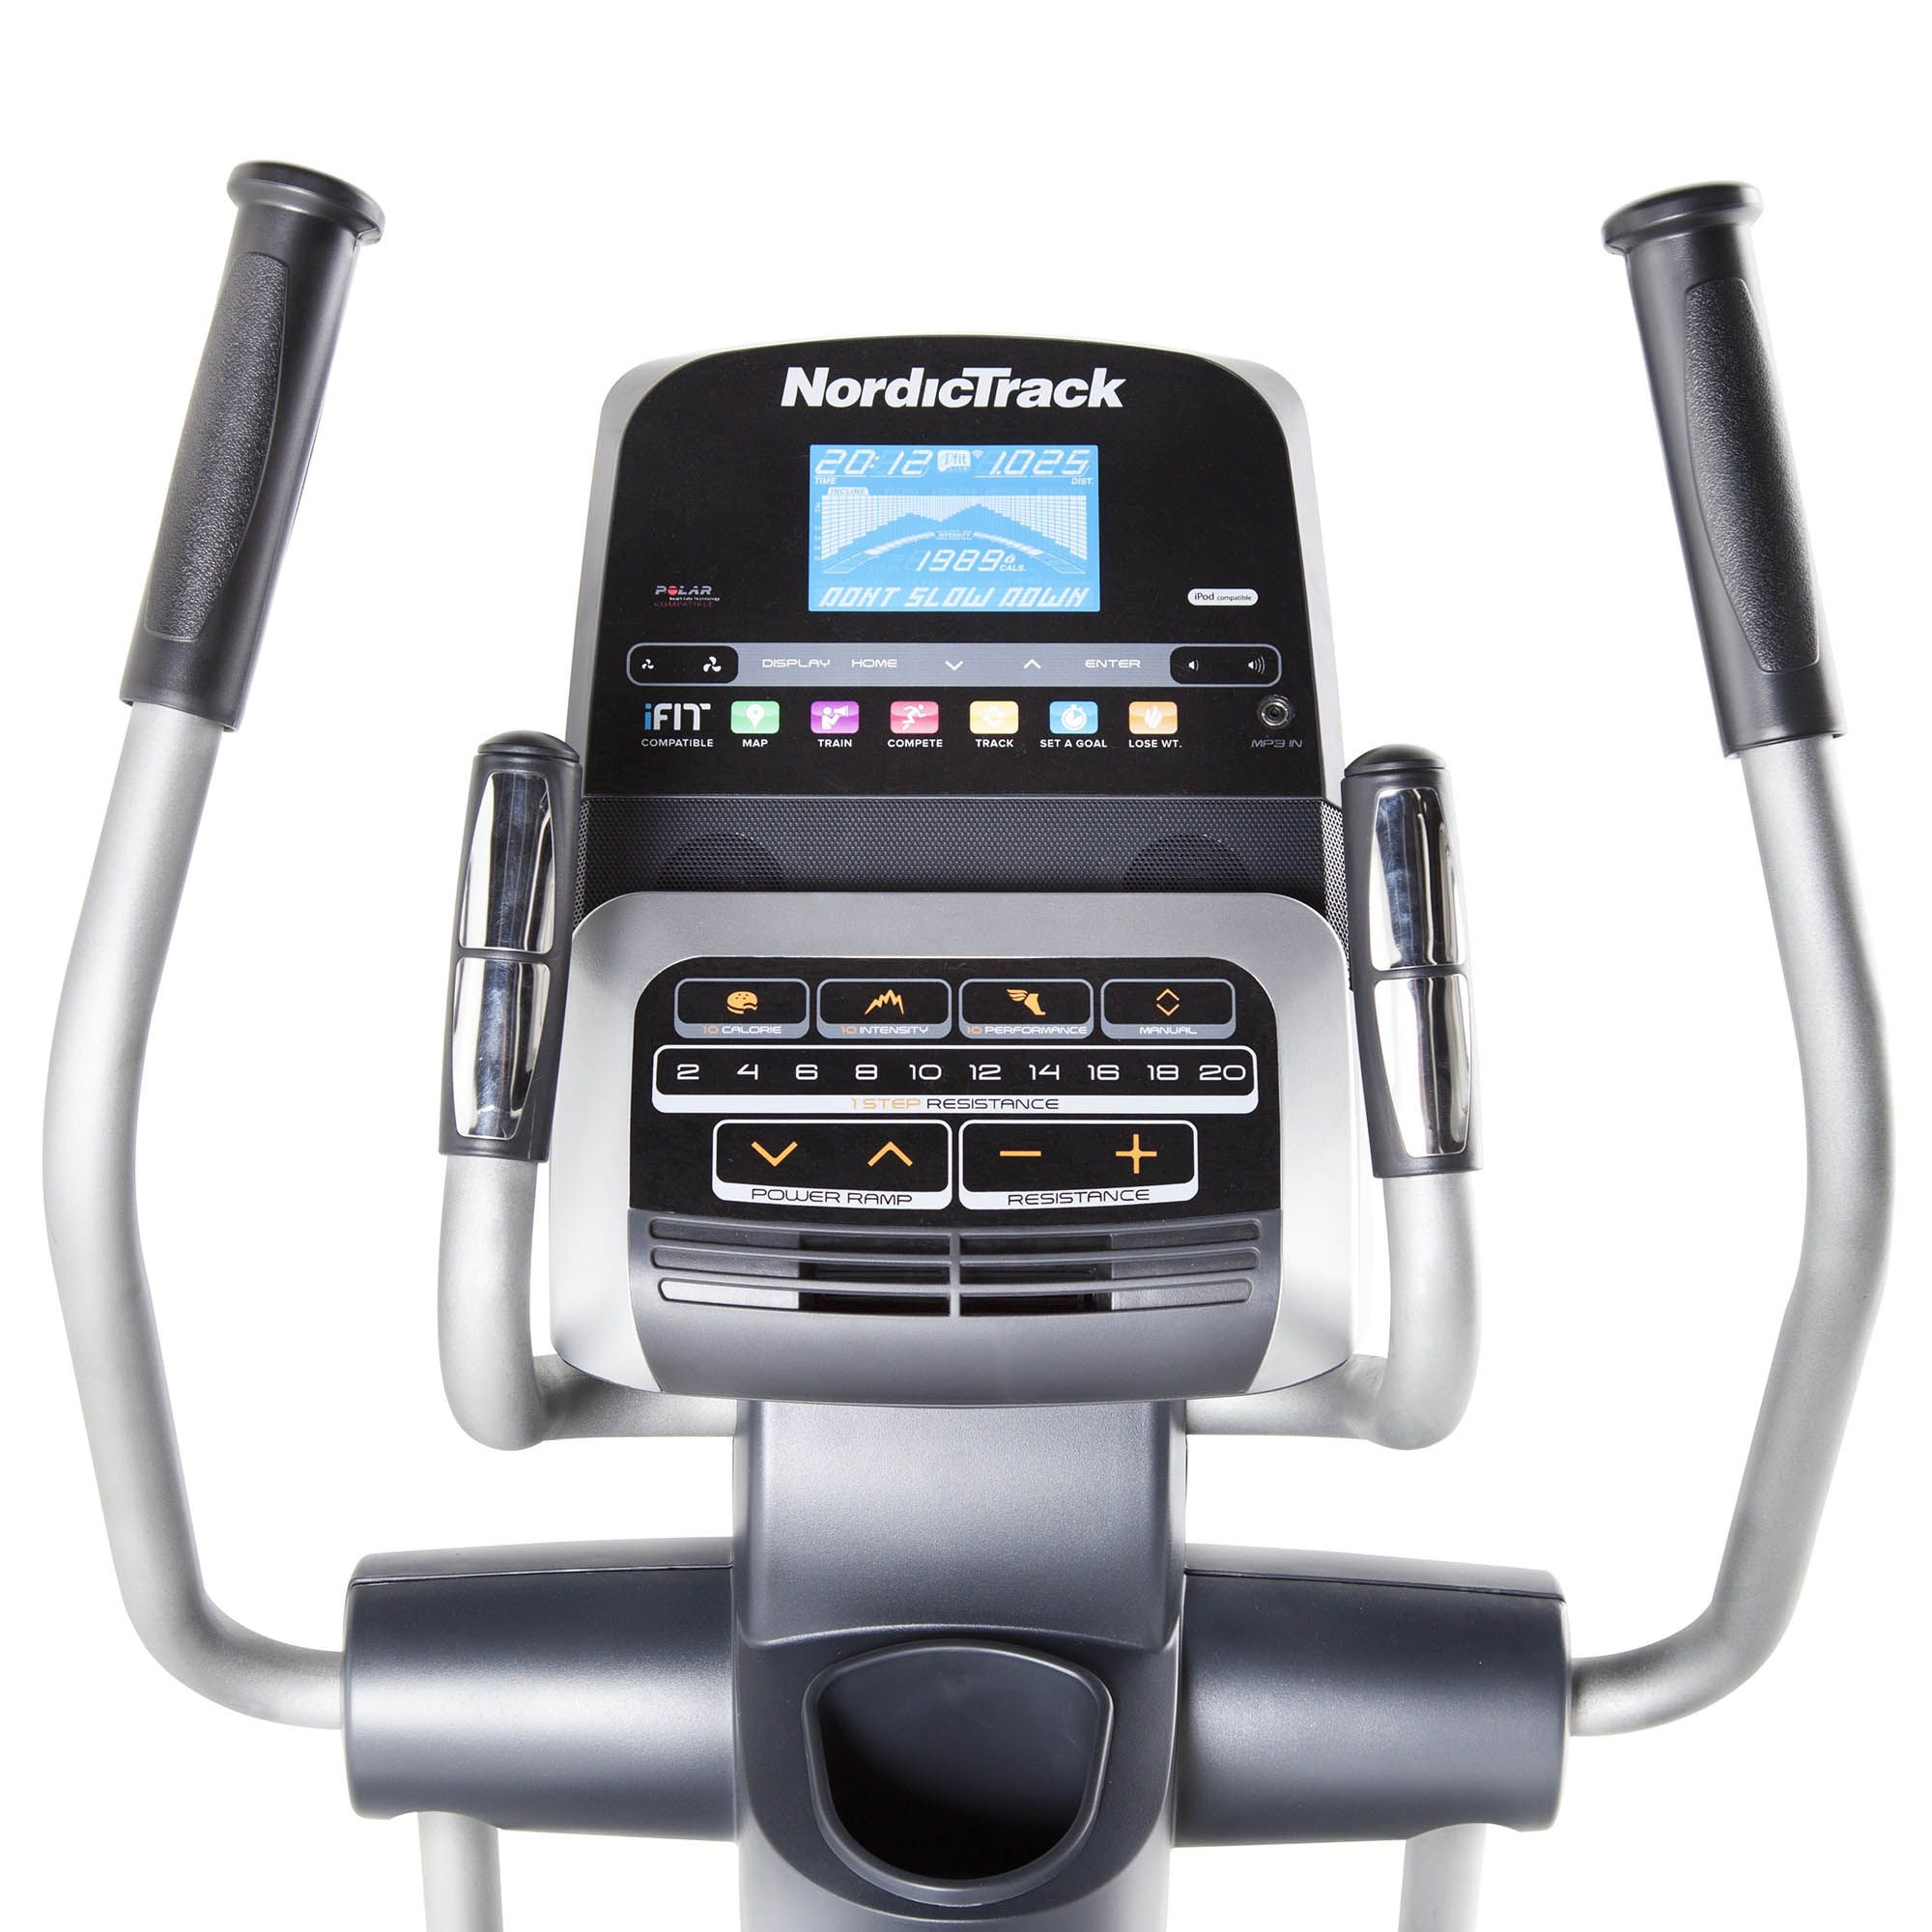 Nordictrack Cross Trainer >> NordicTrack E11.5 Elliptical Cross-trainer - Buy from Fitness Market Australia